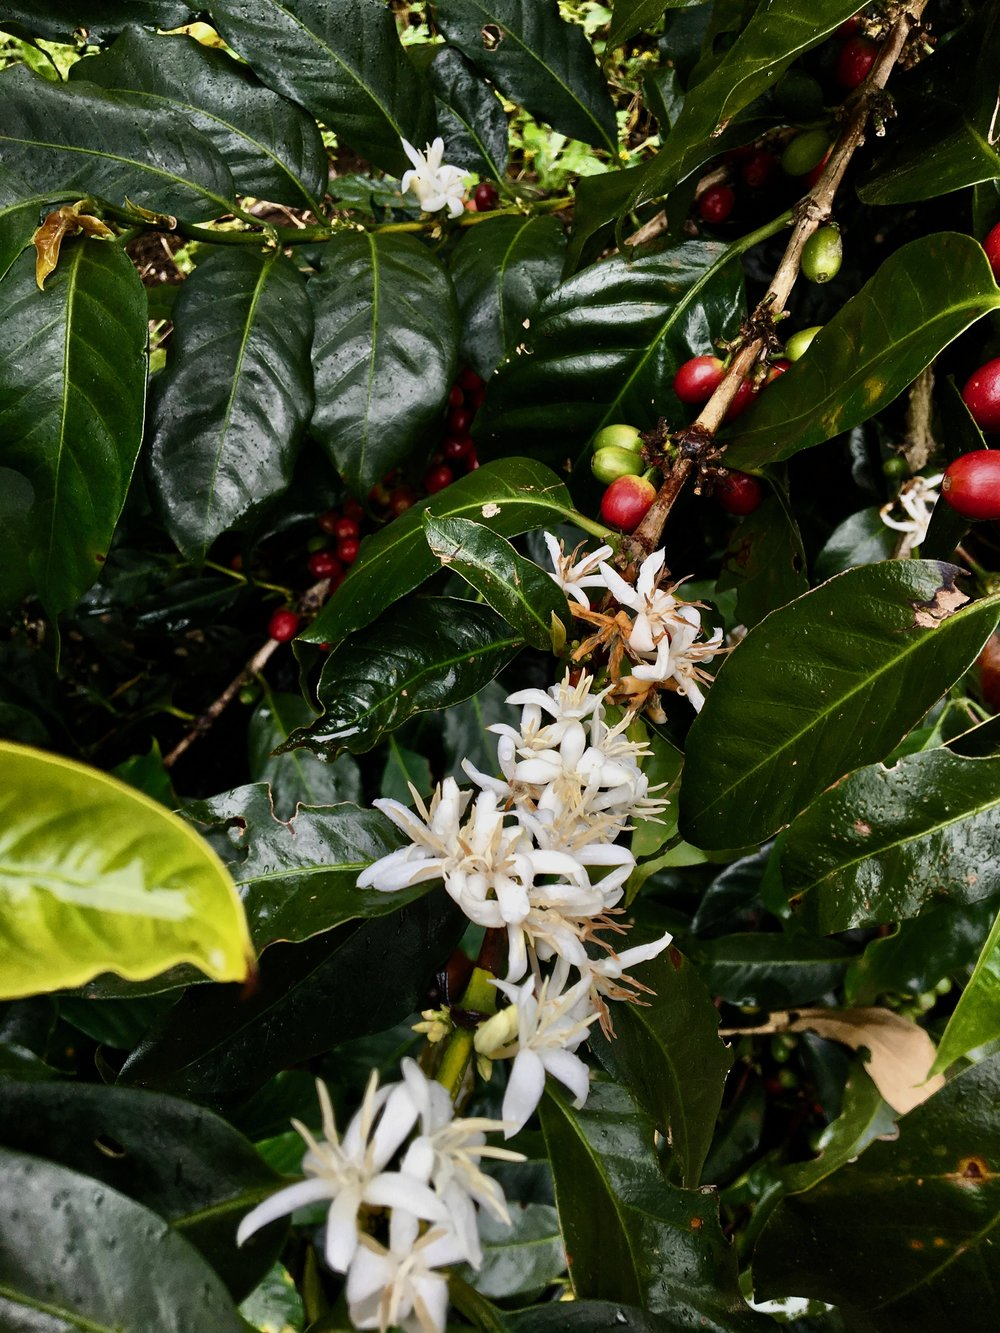 Coffee flowers and beans up close.